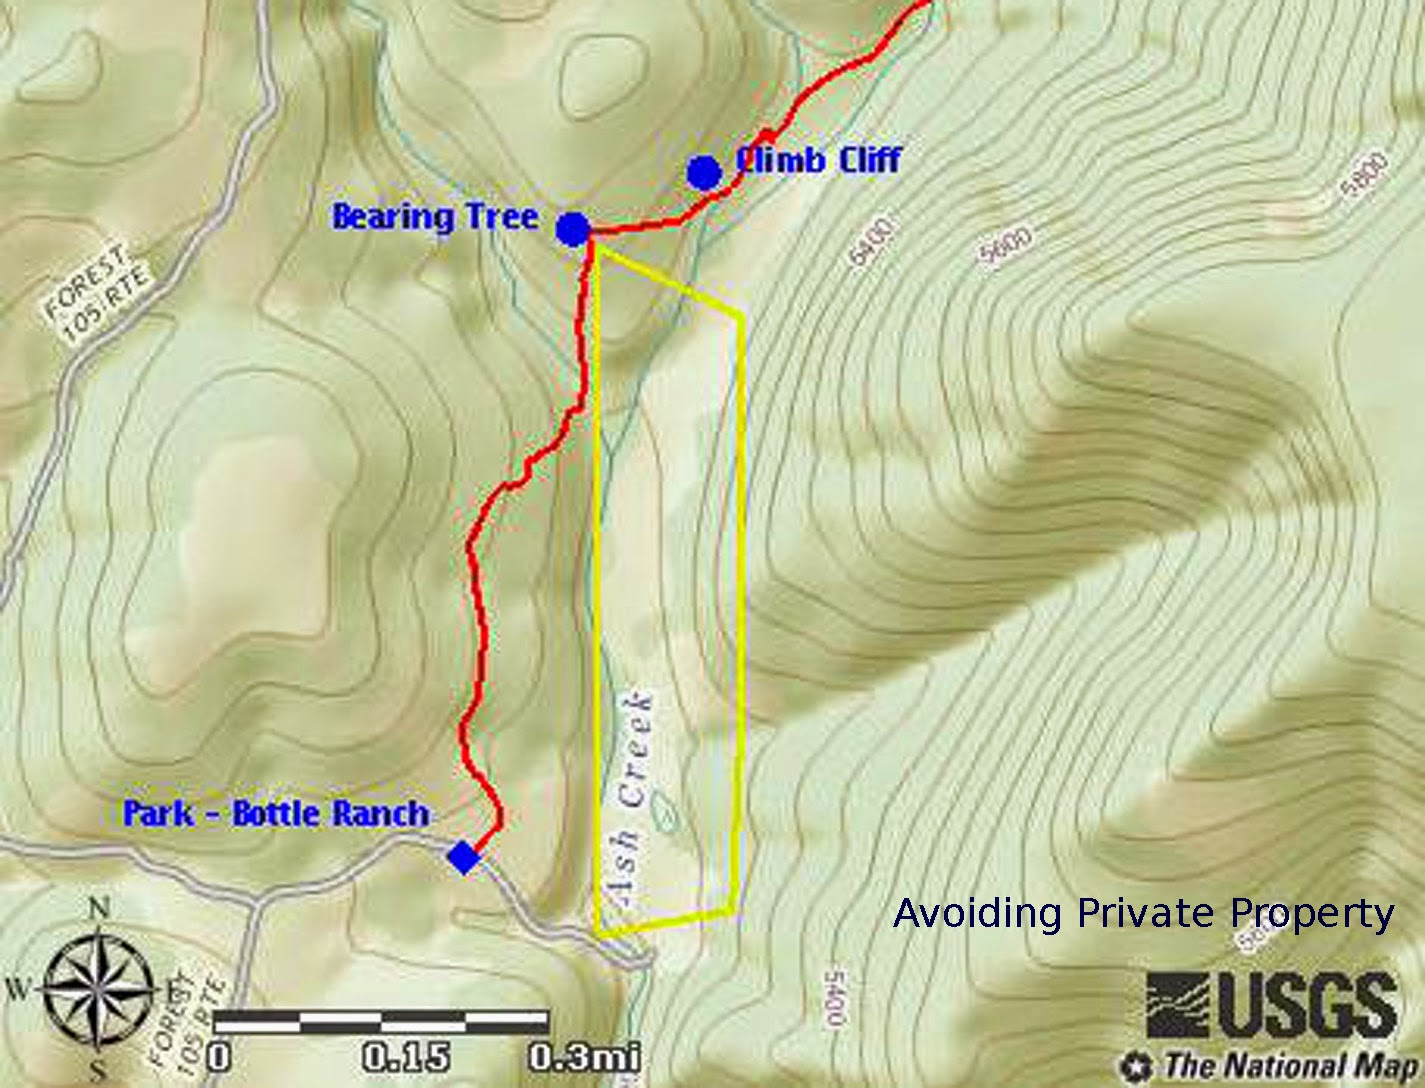 the below map shows our track in red and the outline of the private property at bottle ranch in yellow